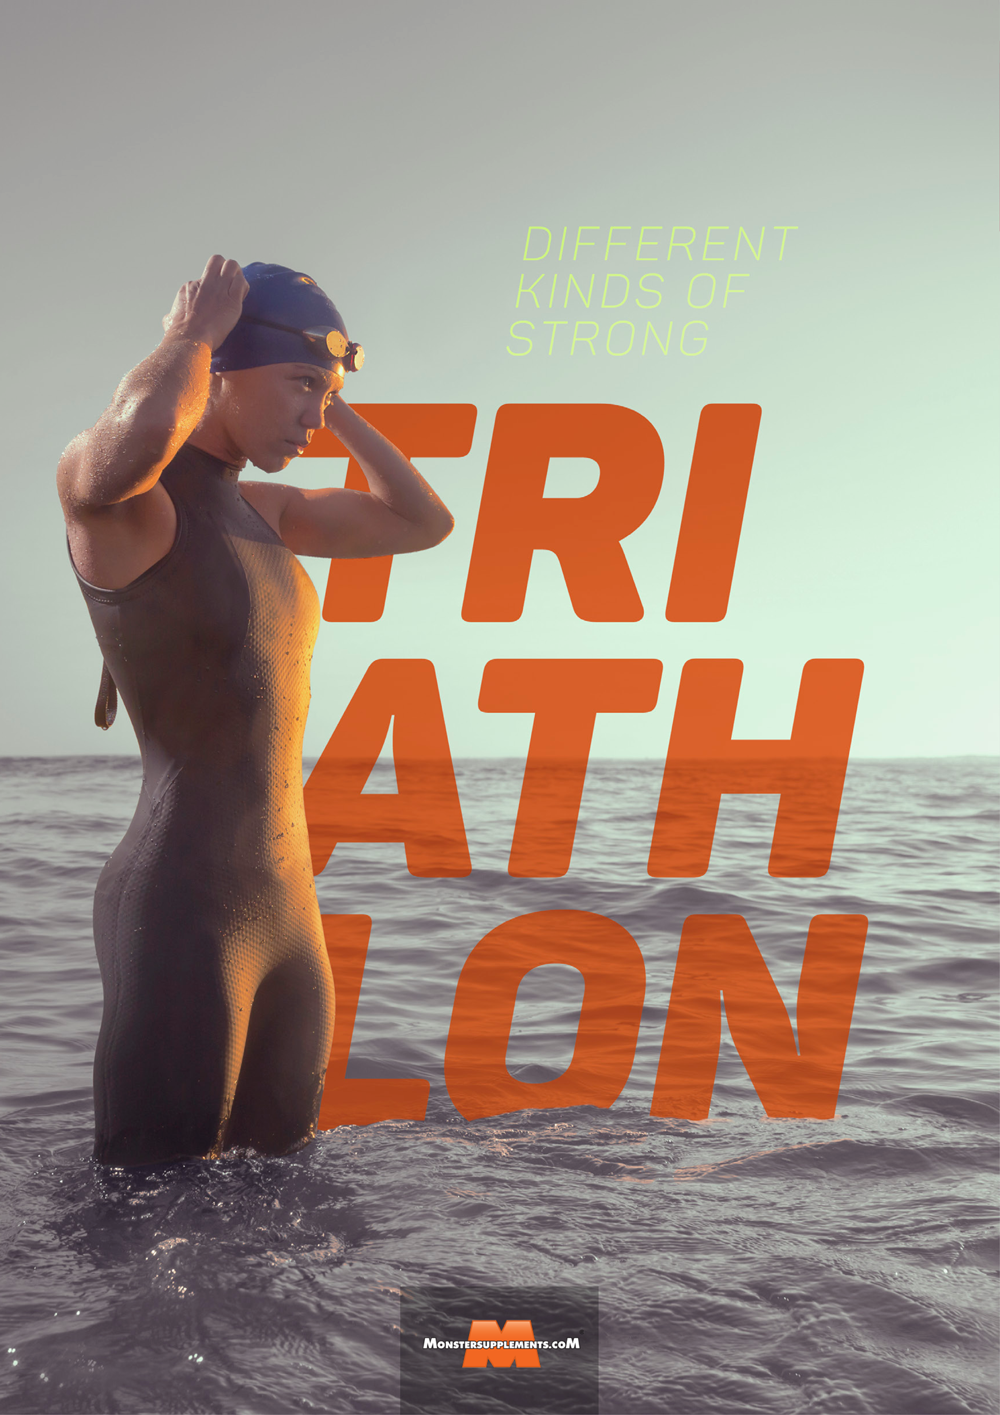 Monster Supplements' Triathlon eBook